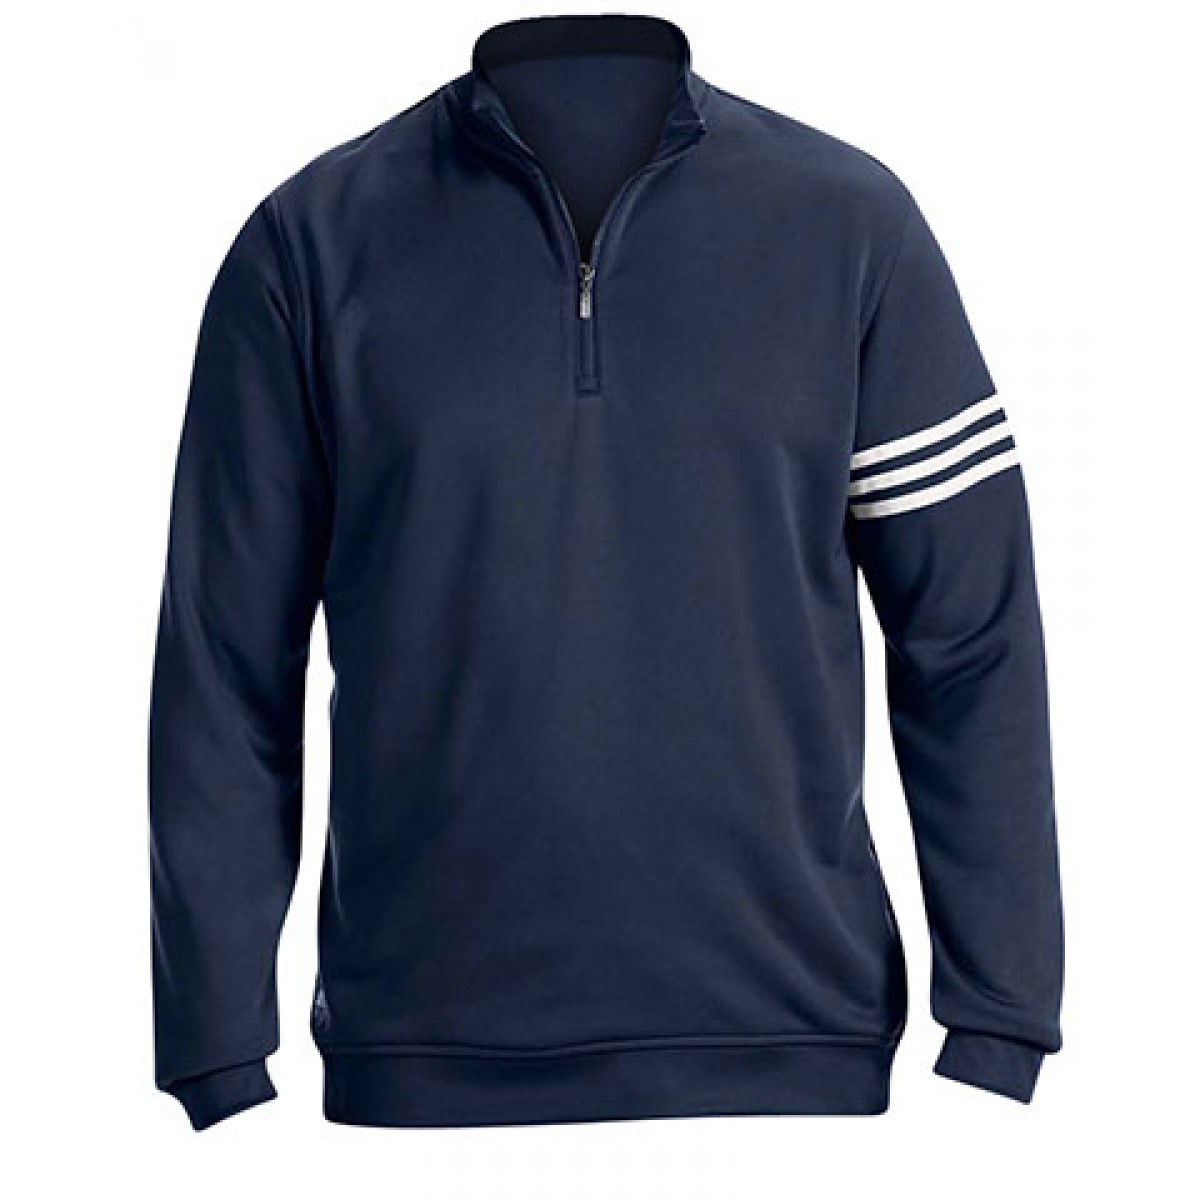 Adidas Men's 3-Stripes Pullover-Navy-XL